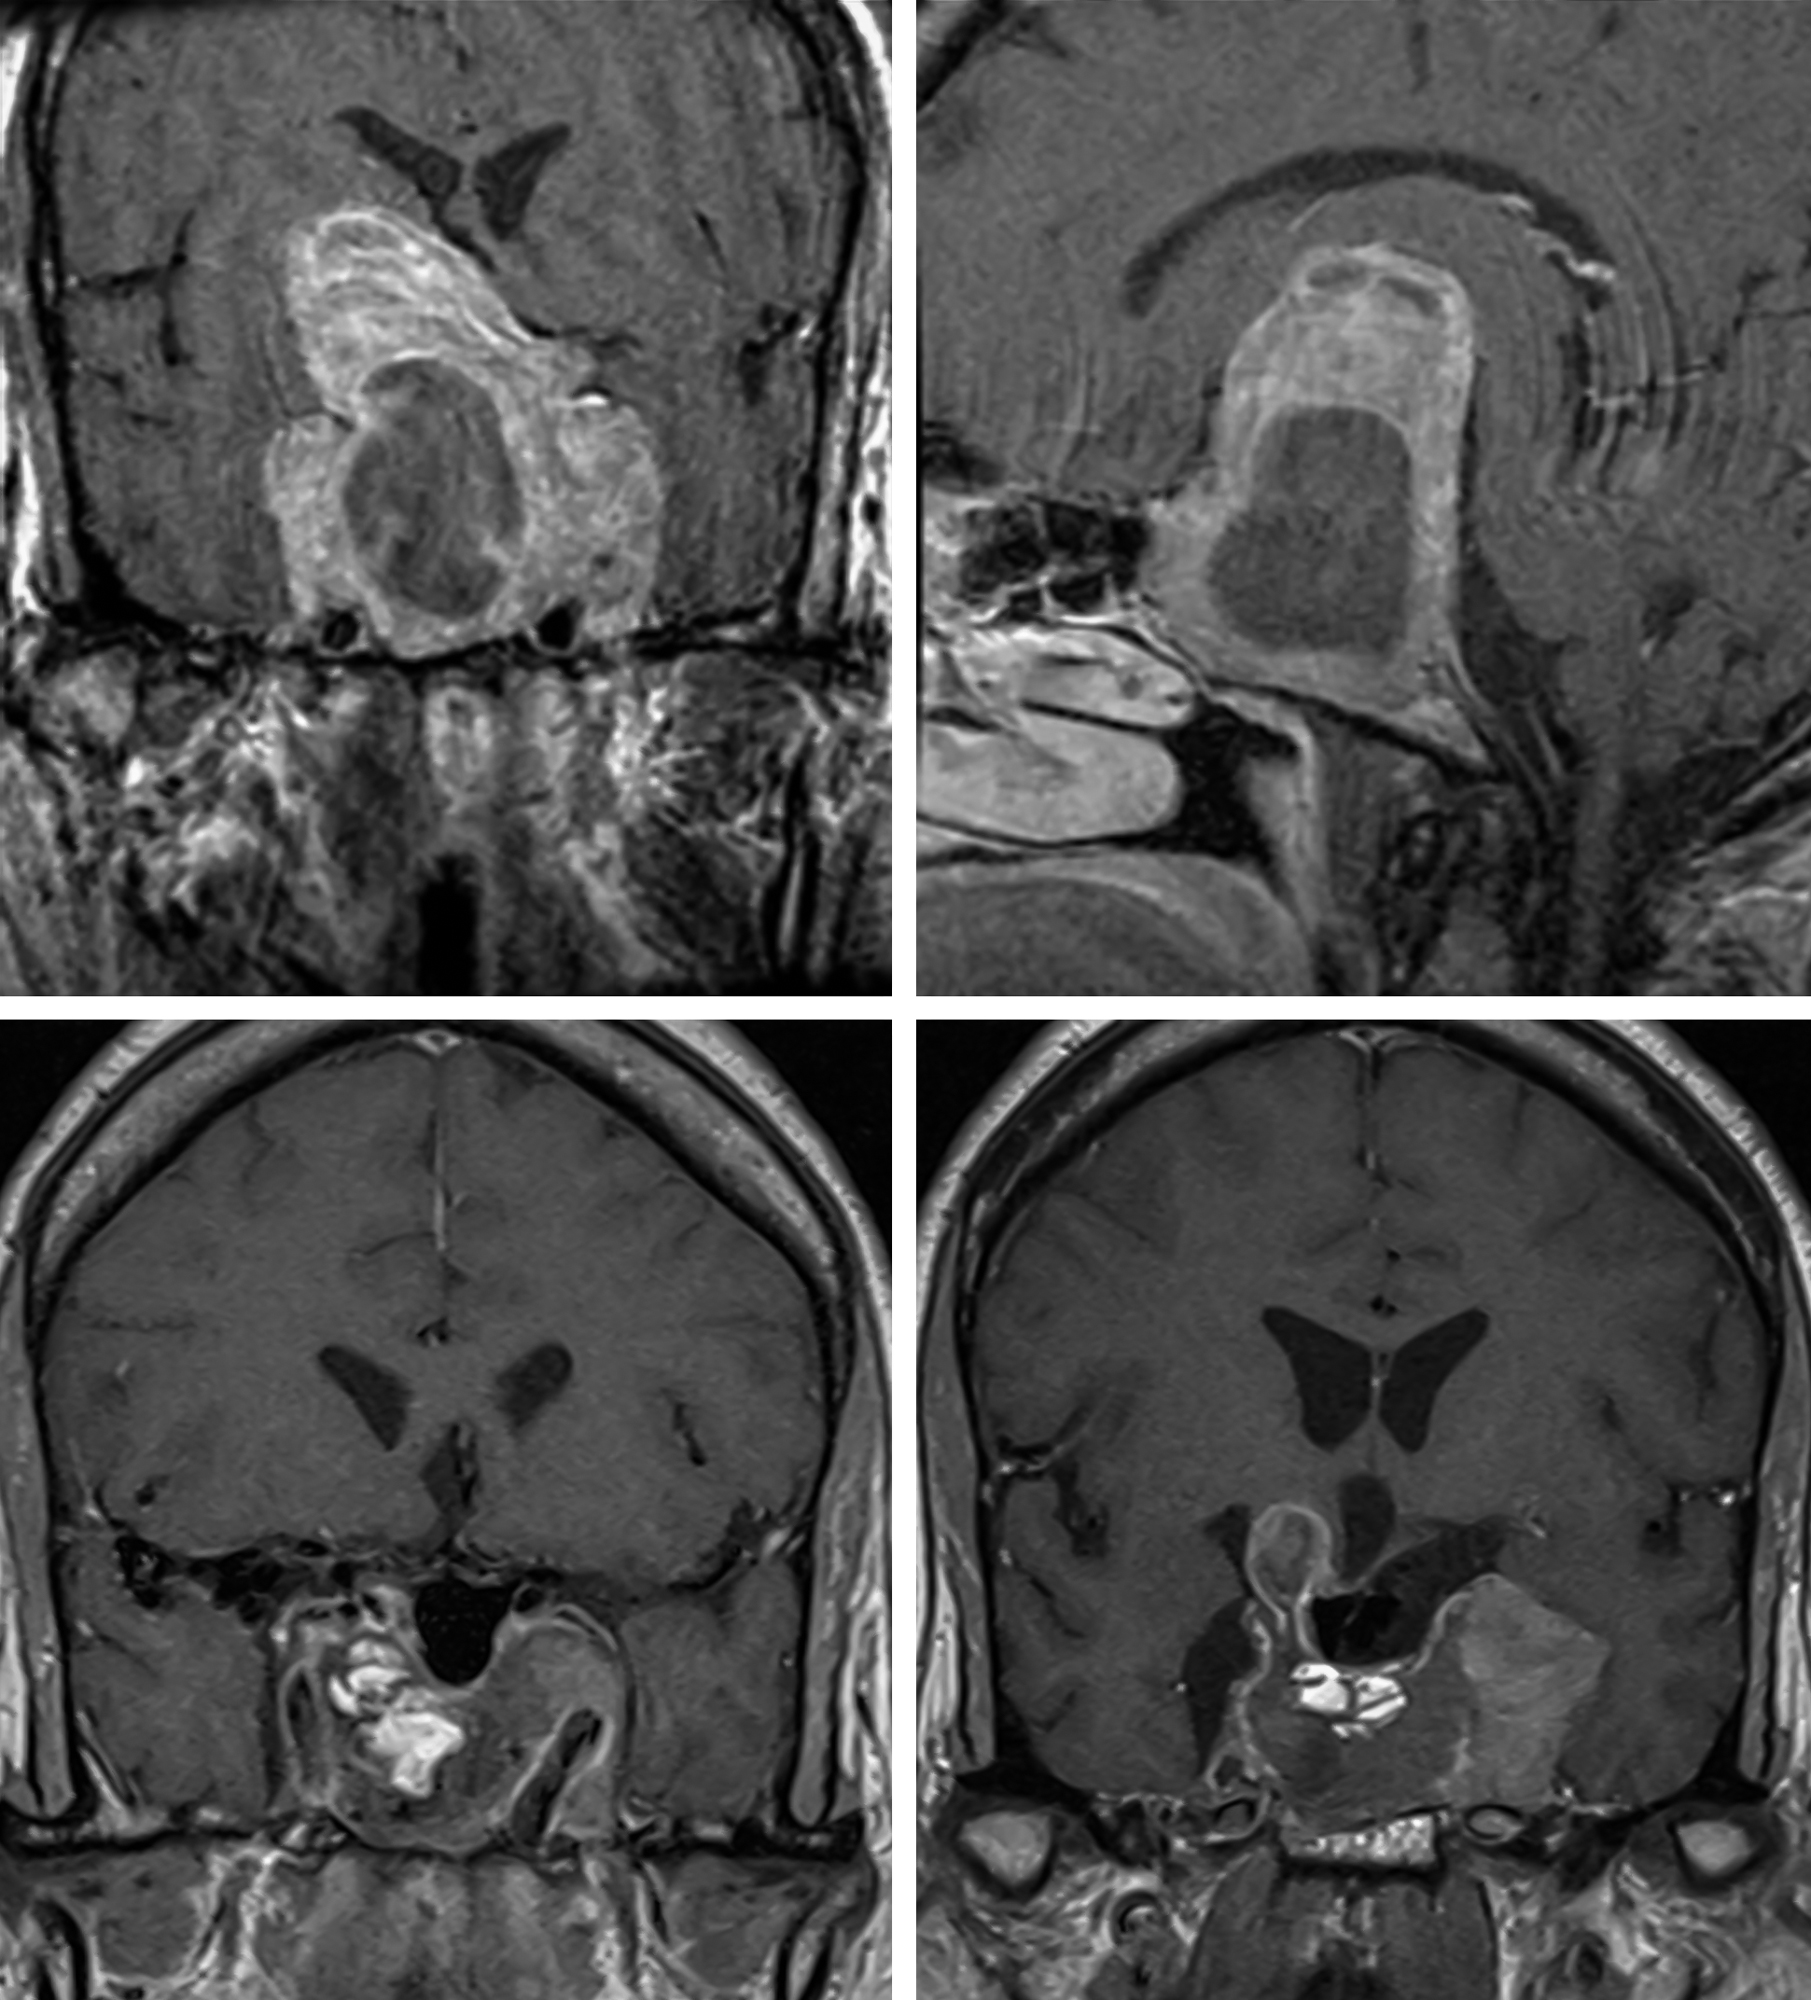 Figure 2: The asymmetric tumors with significant cavernous sinus invasion are included (top row of images); this morphology provides more technical challenges and effective resection is unlikely. Transsphenoidal surgery was successful for removal of the majority of this partially cystic tumor, but the lateral intracavernous component was not reachable (bottom row). Please note the fat packing in the sella.